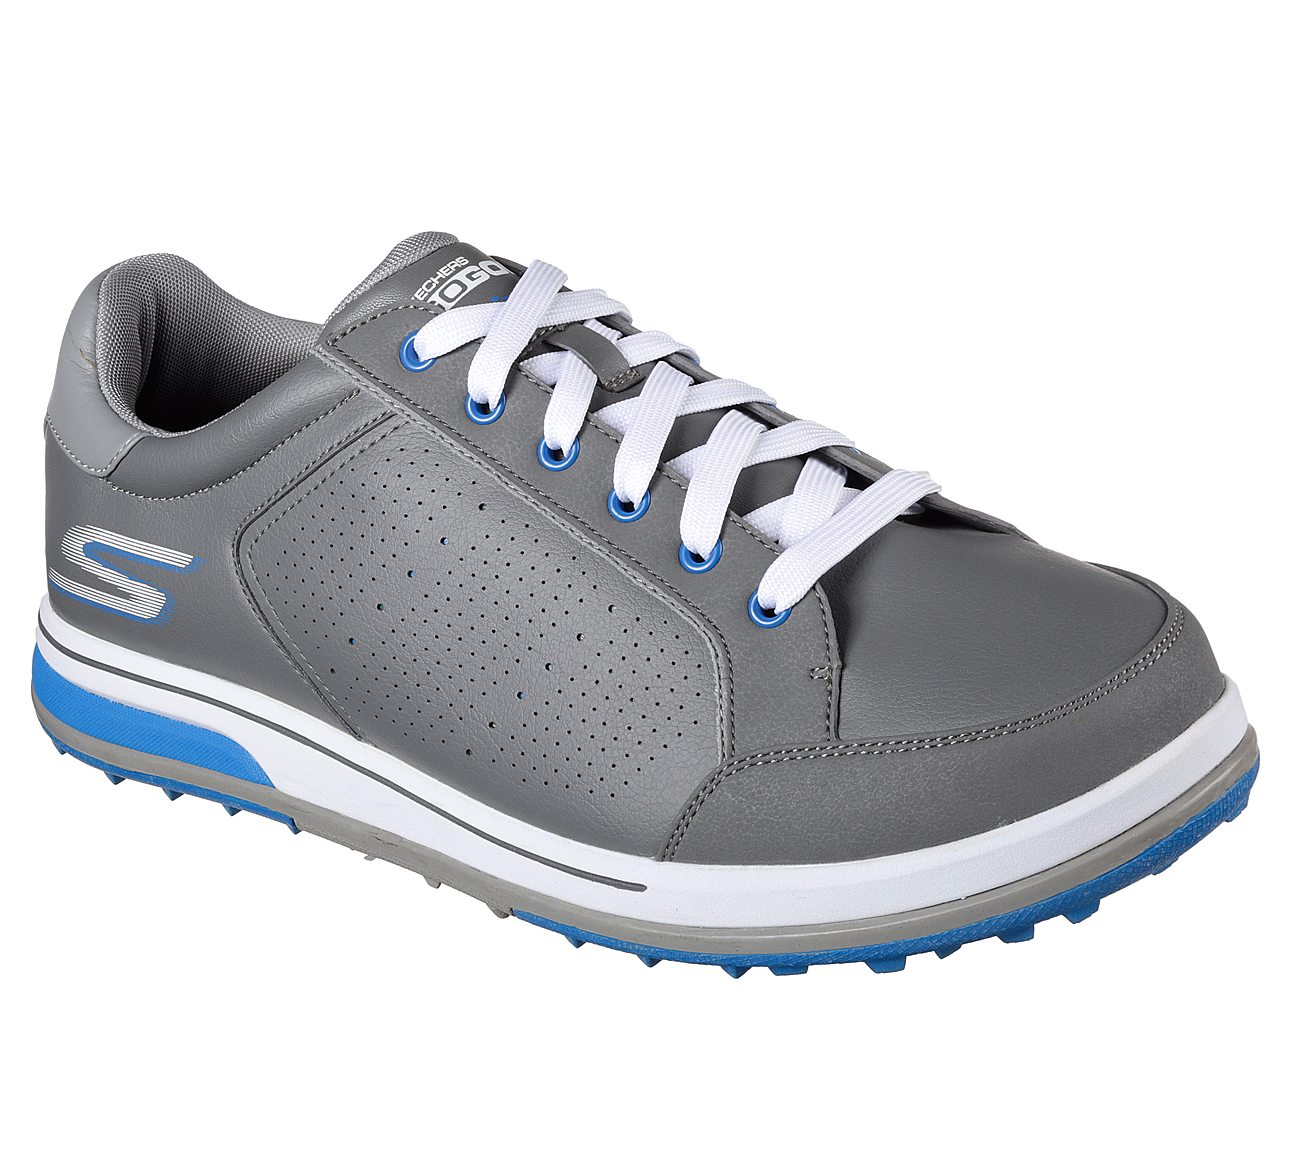 Skechers Go Golf Drive 2 Golf Shoe - Grey/Blue